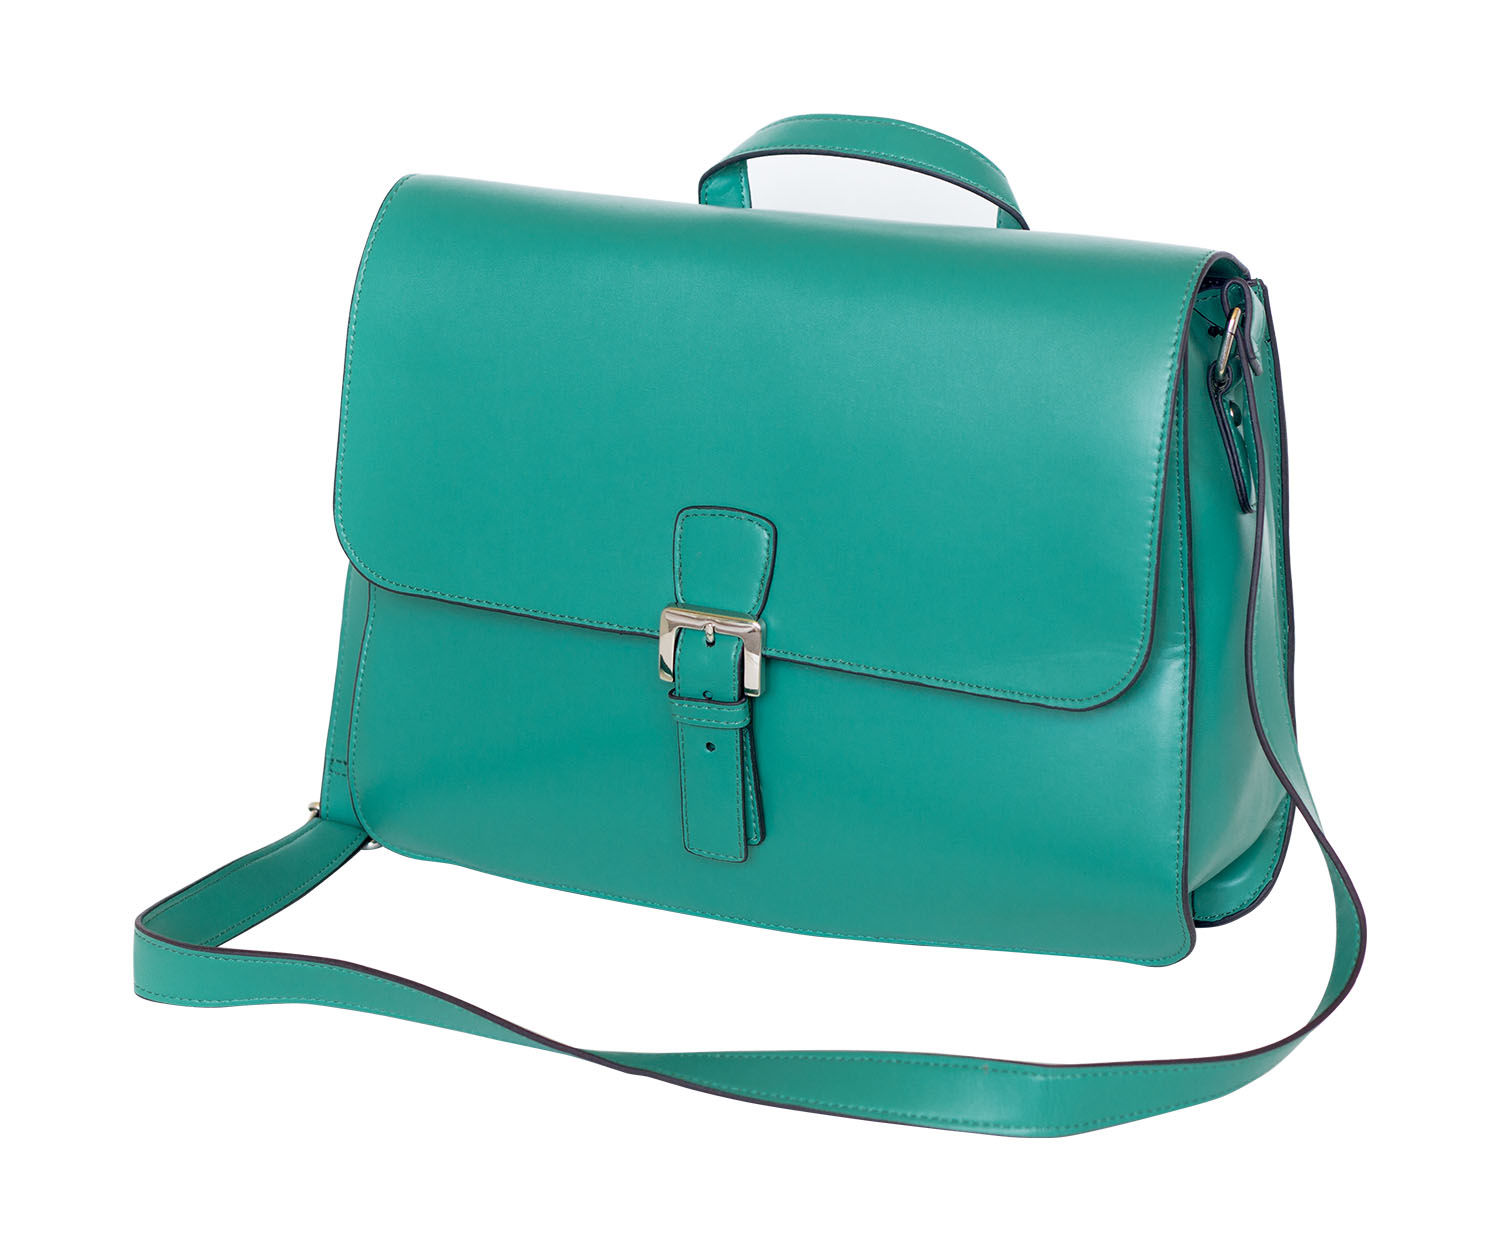 Offex Women's Lily Emerald Mini Messenger Bag